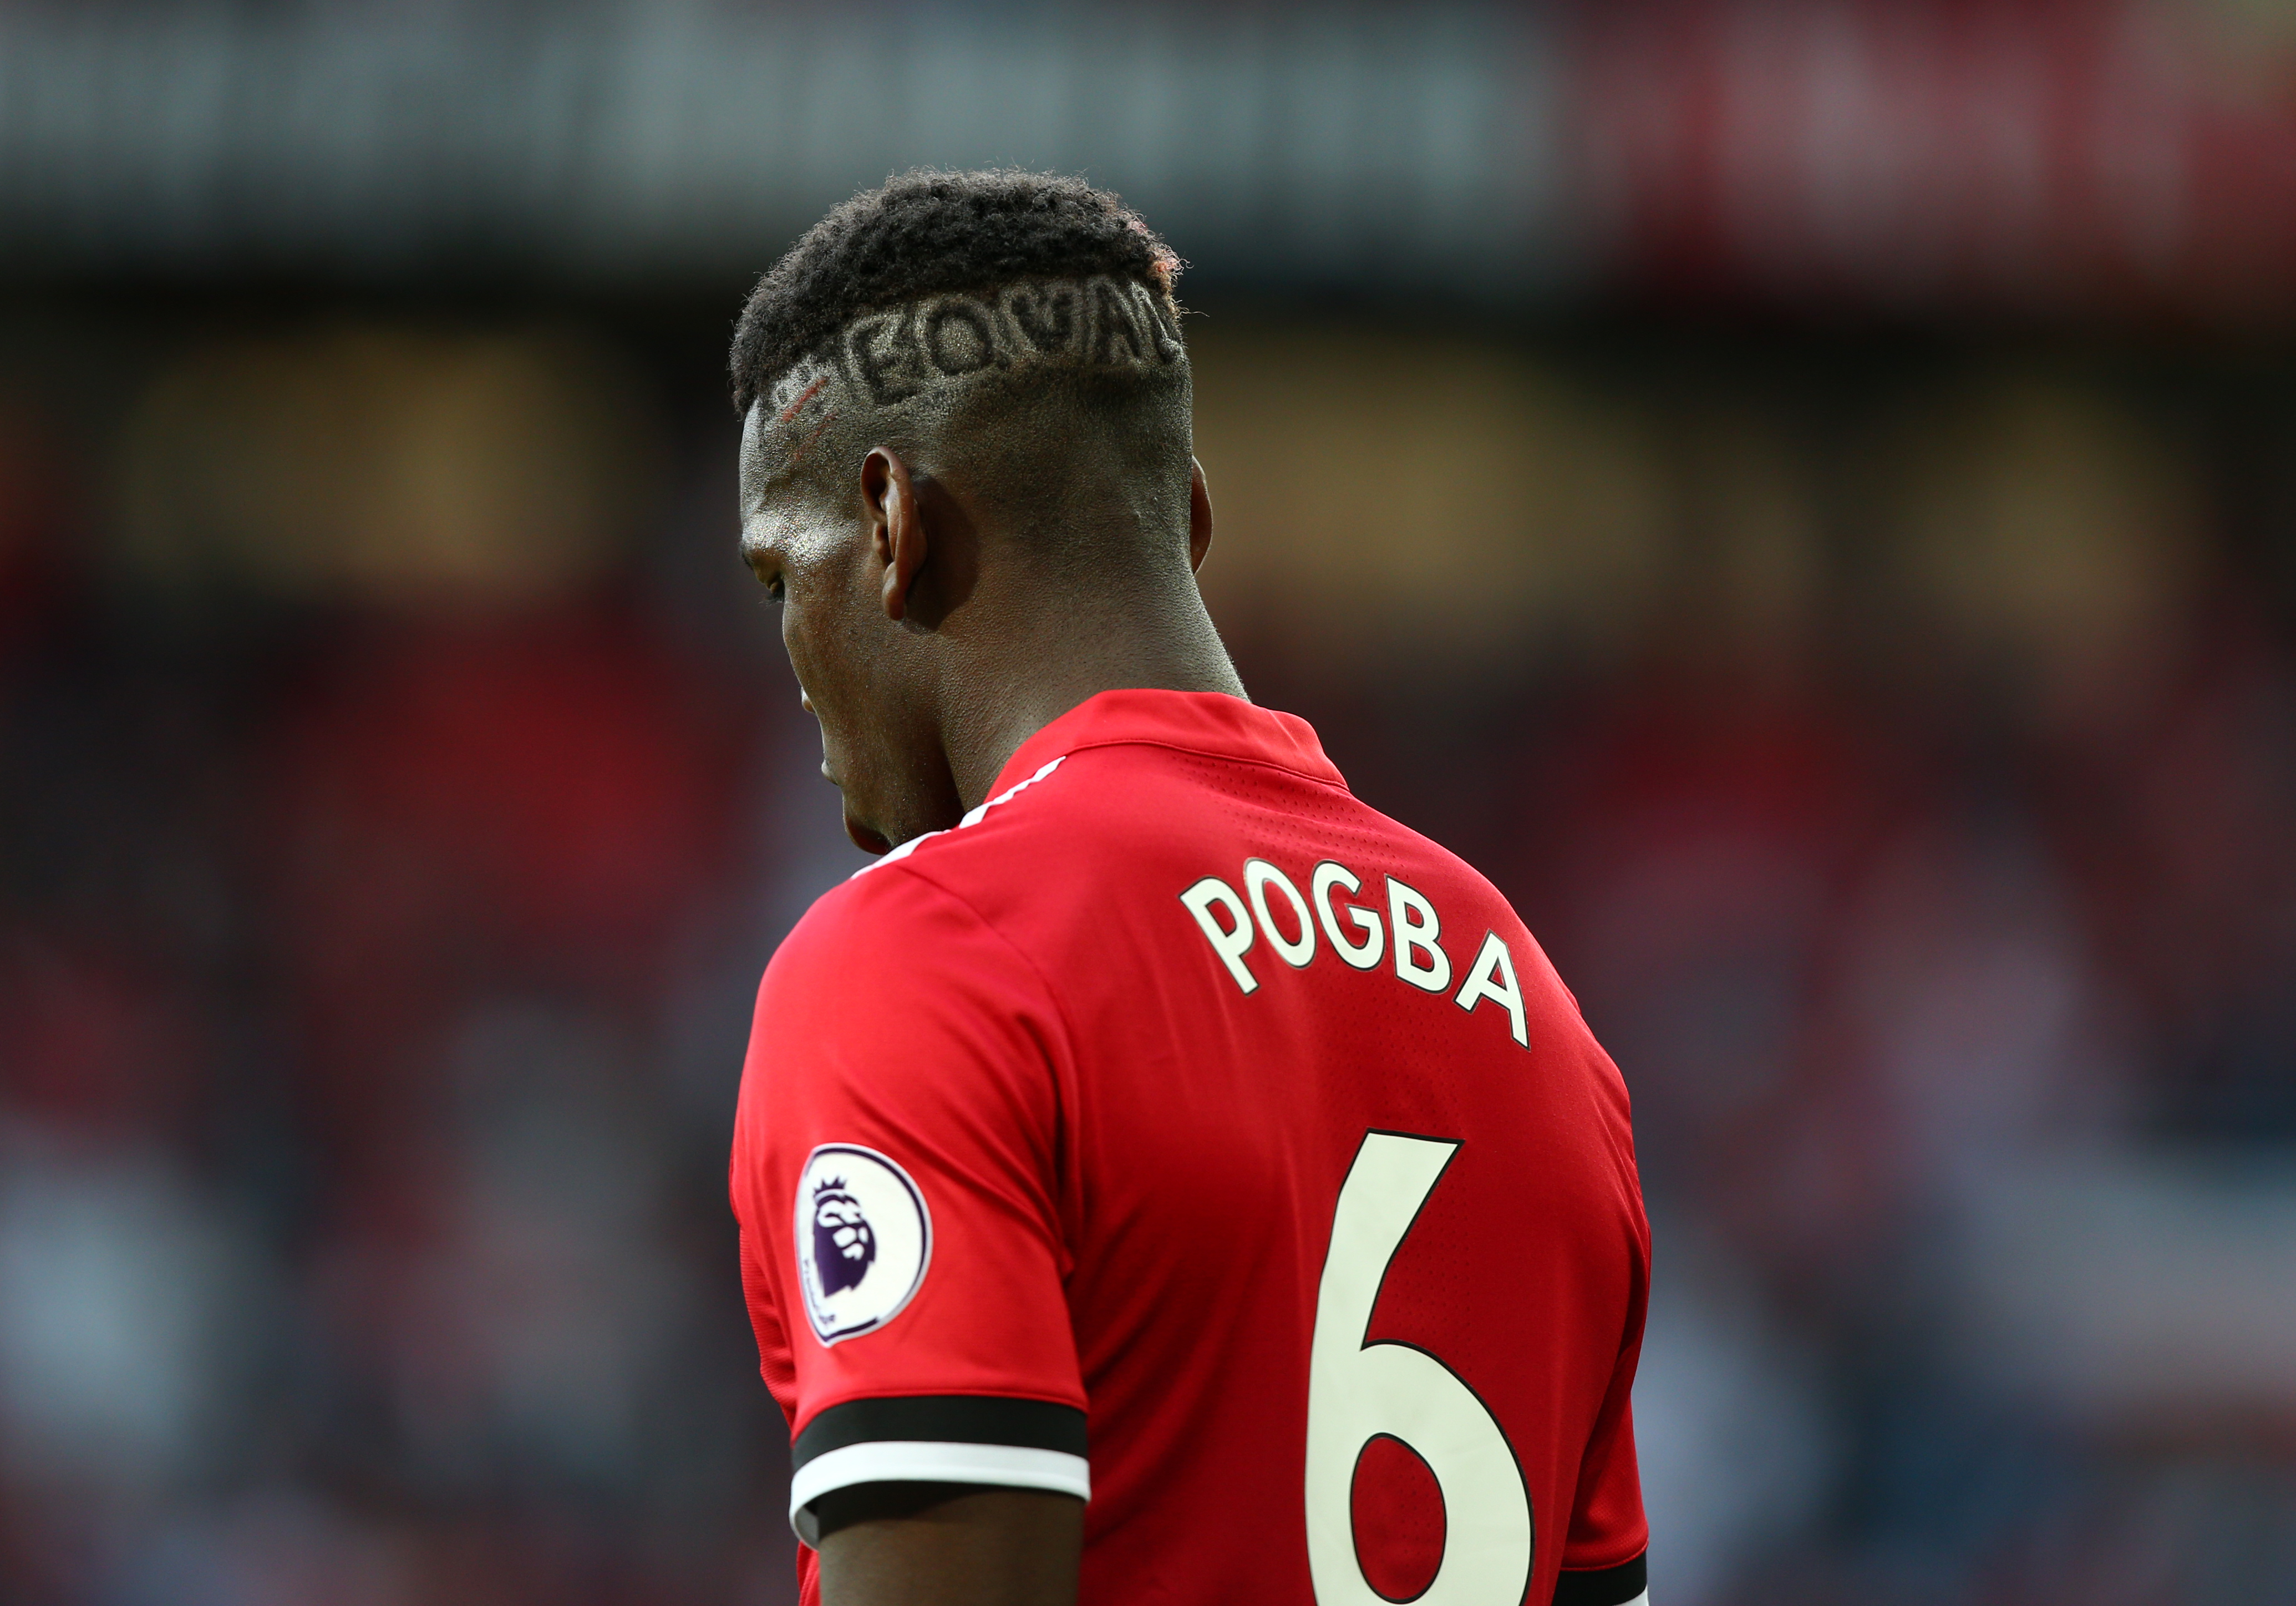 Manchester United's Paul Pogba during the Premier League match at Old Trafford